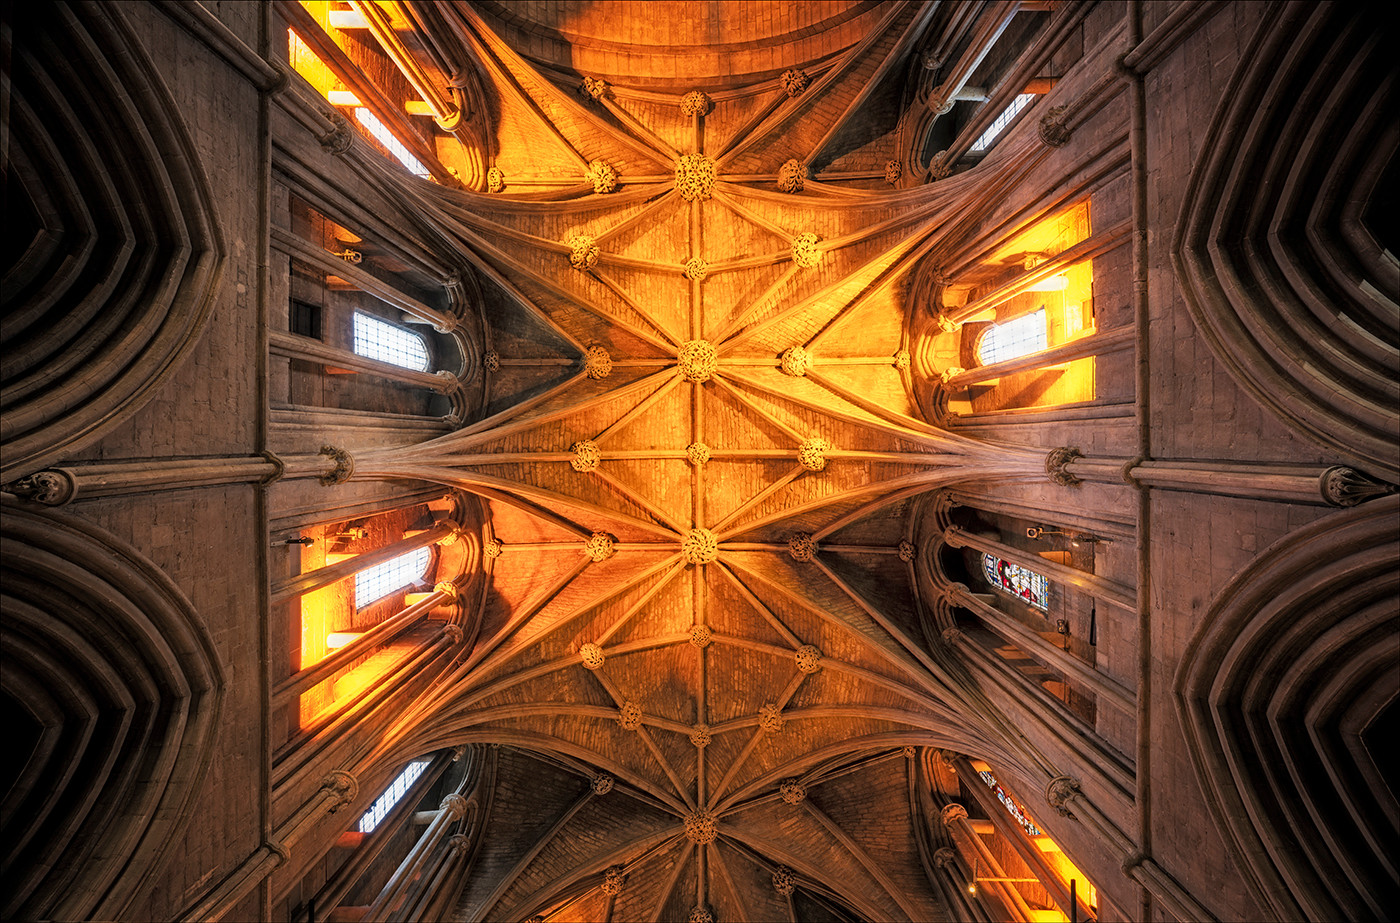 14 PRINT VAULTED ROOF PERSHORE ABBEY by Steve Oakes